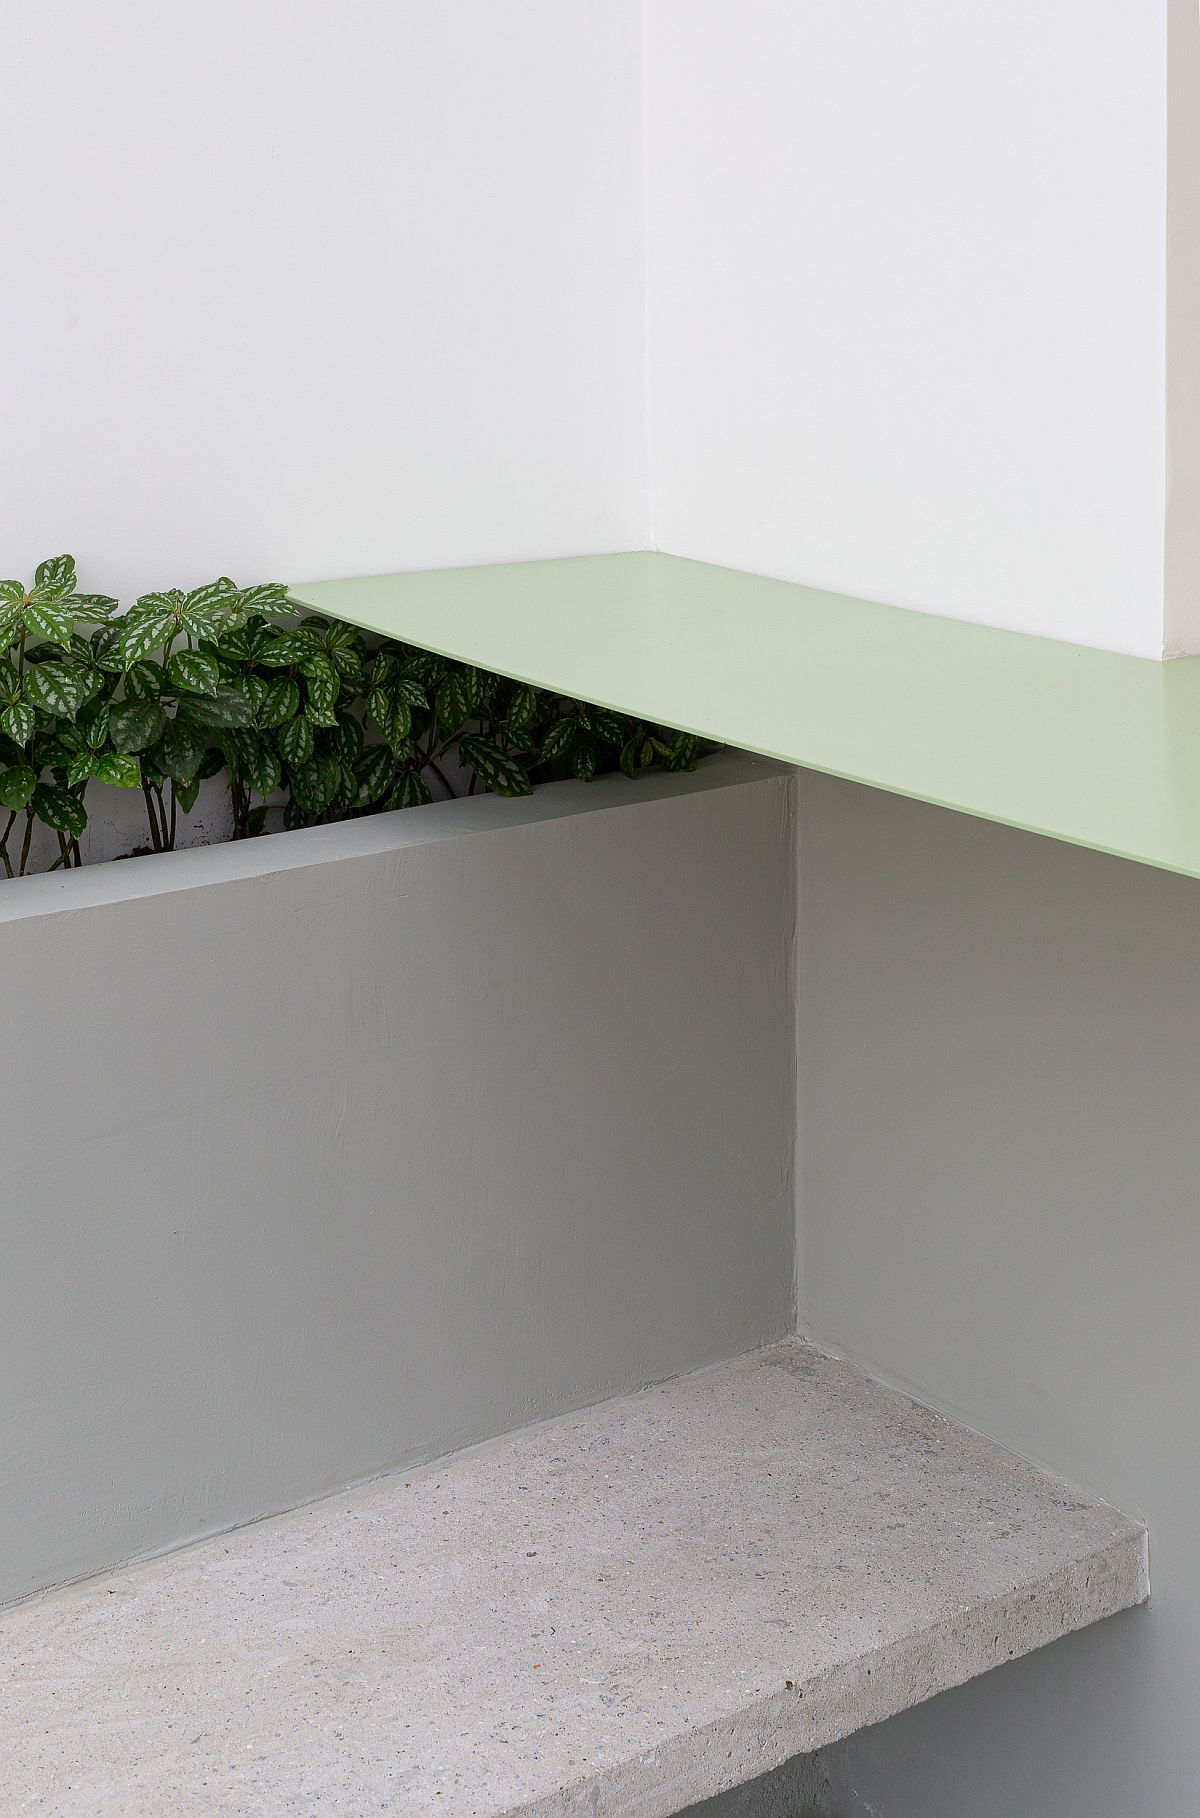 Finding-space-for-greenery-inside-the-modern-restaurant-23929